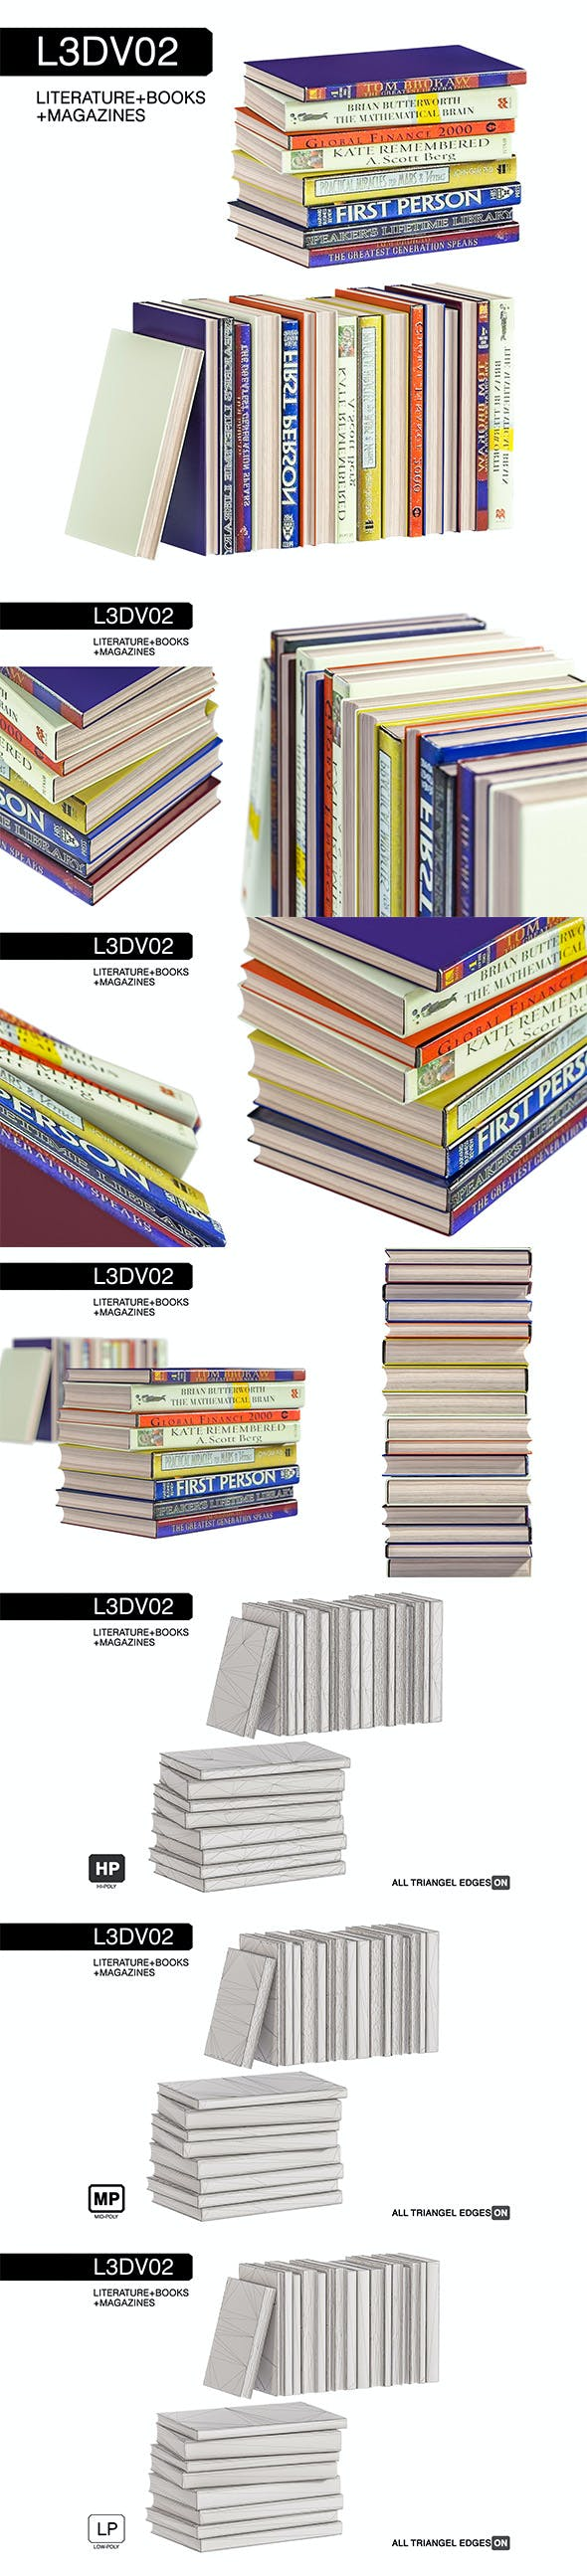 L3DV02G07 - books set with 3 polygonal levels - 3DOcean Item for Sale